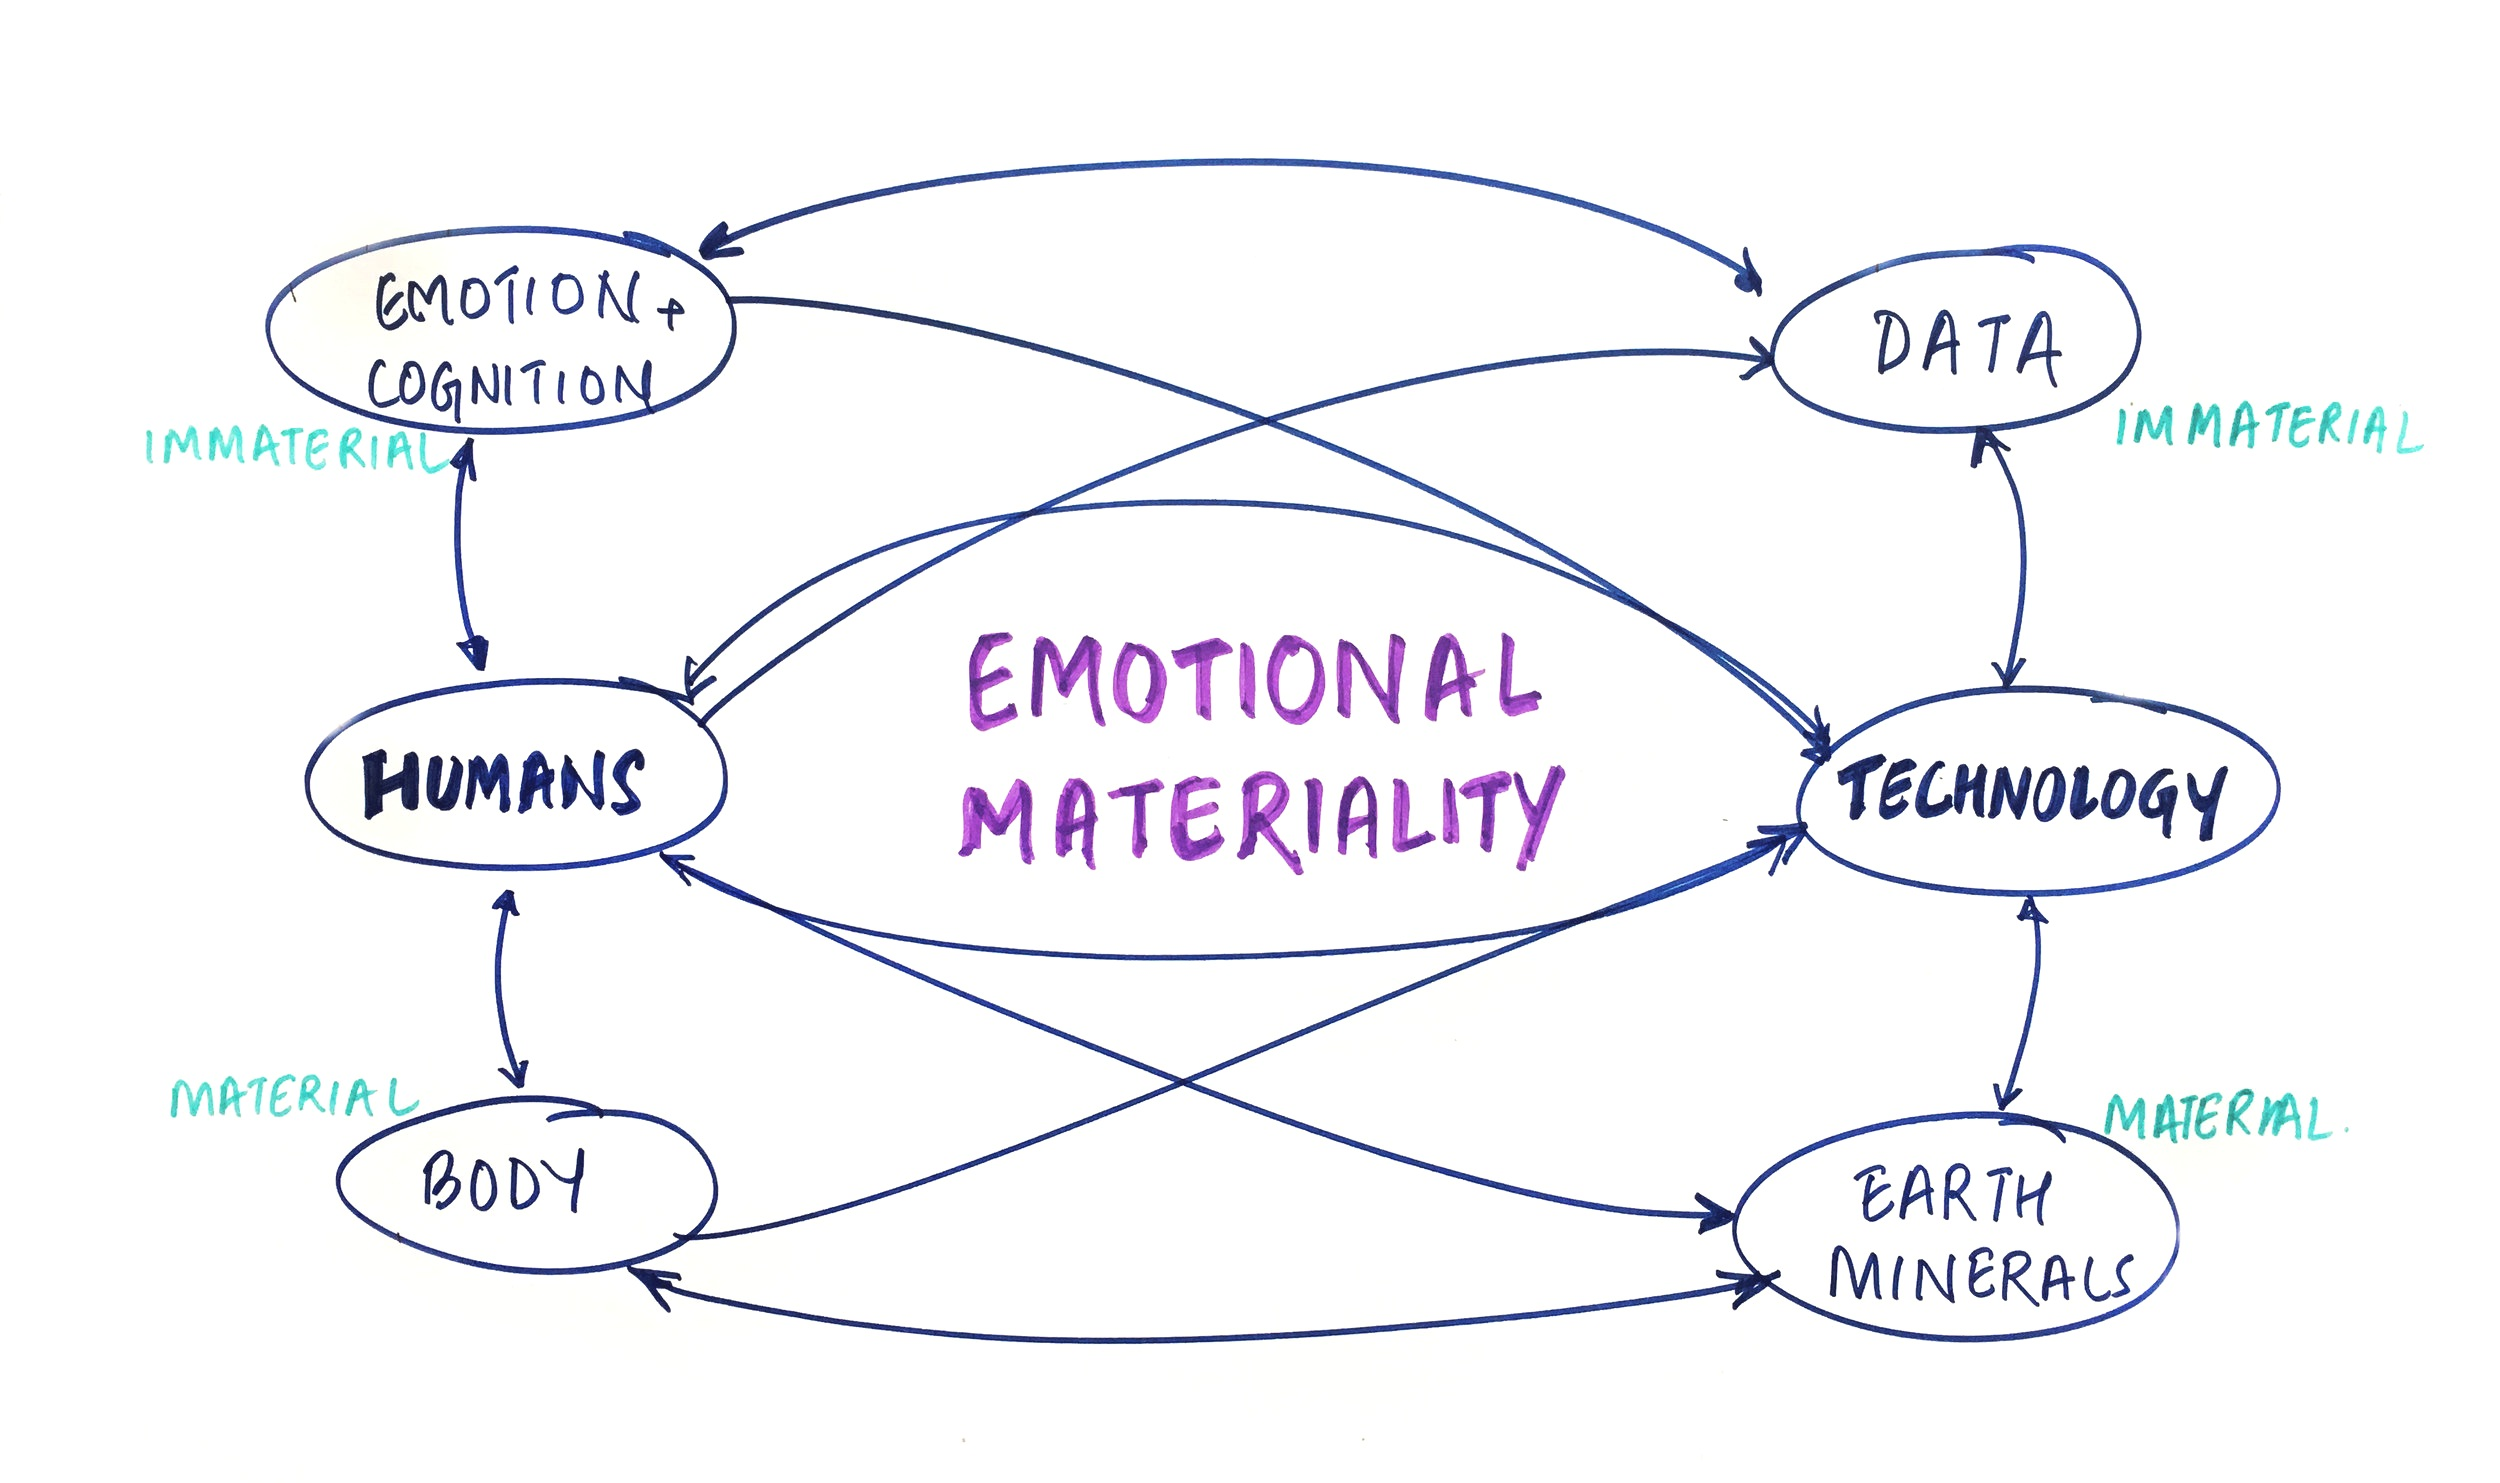 emotional materiality diagram.jpg